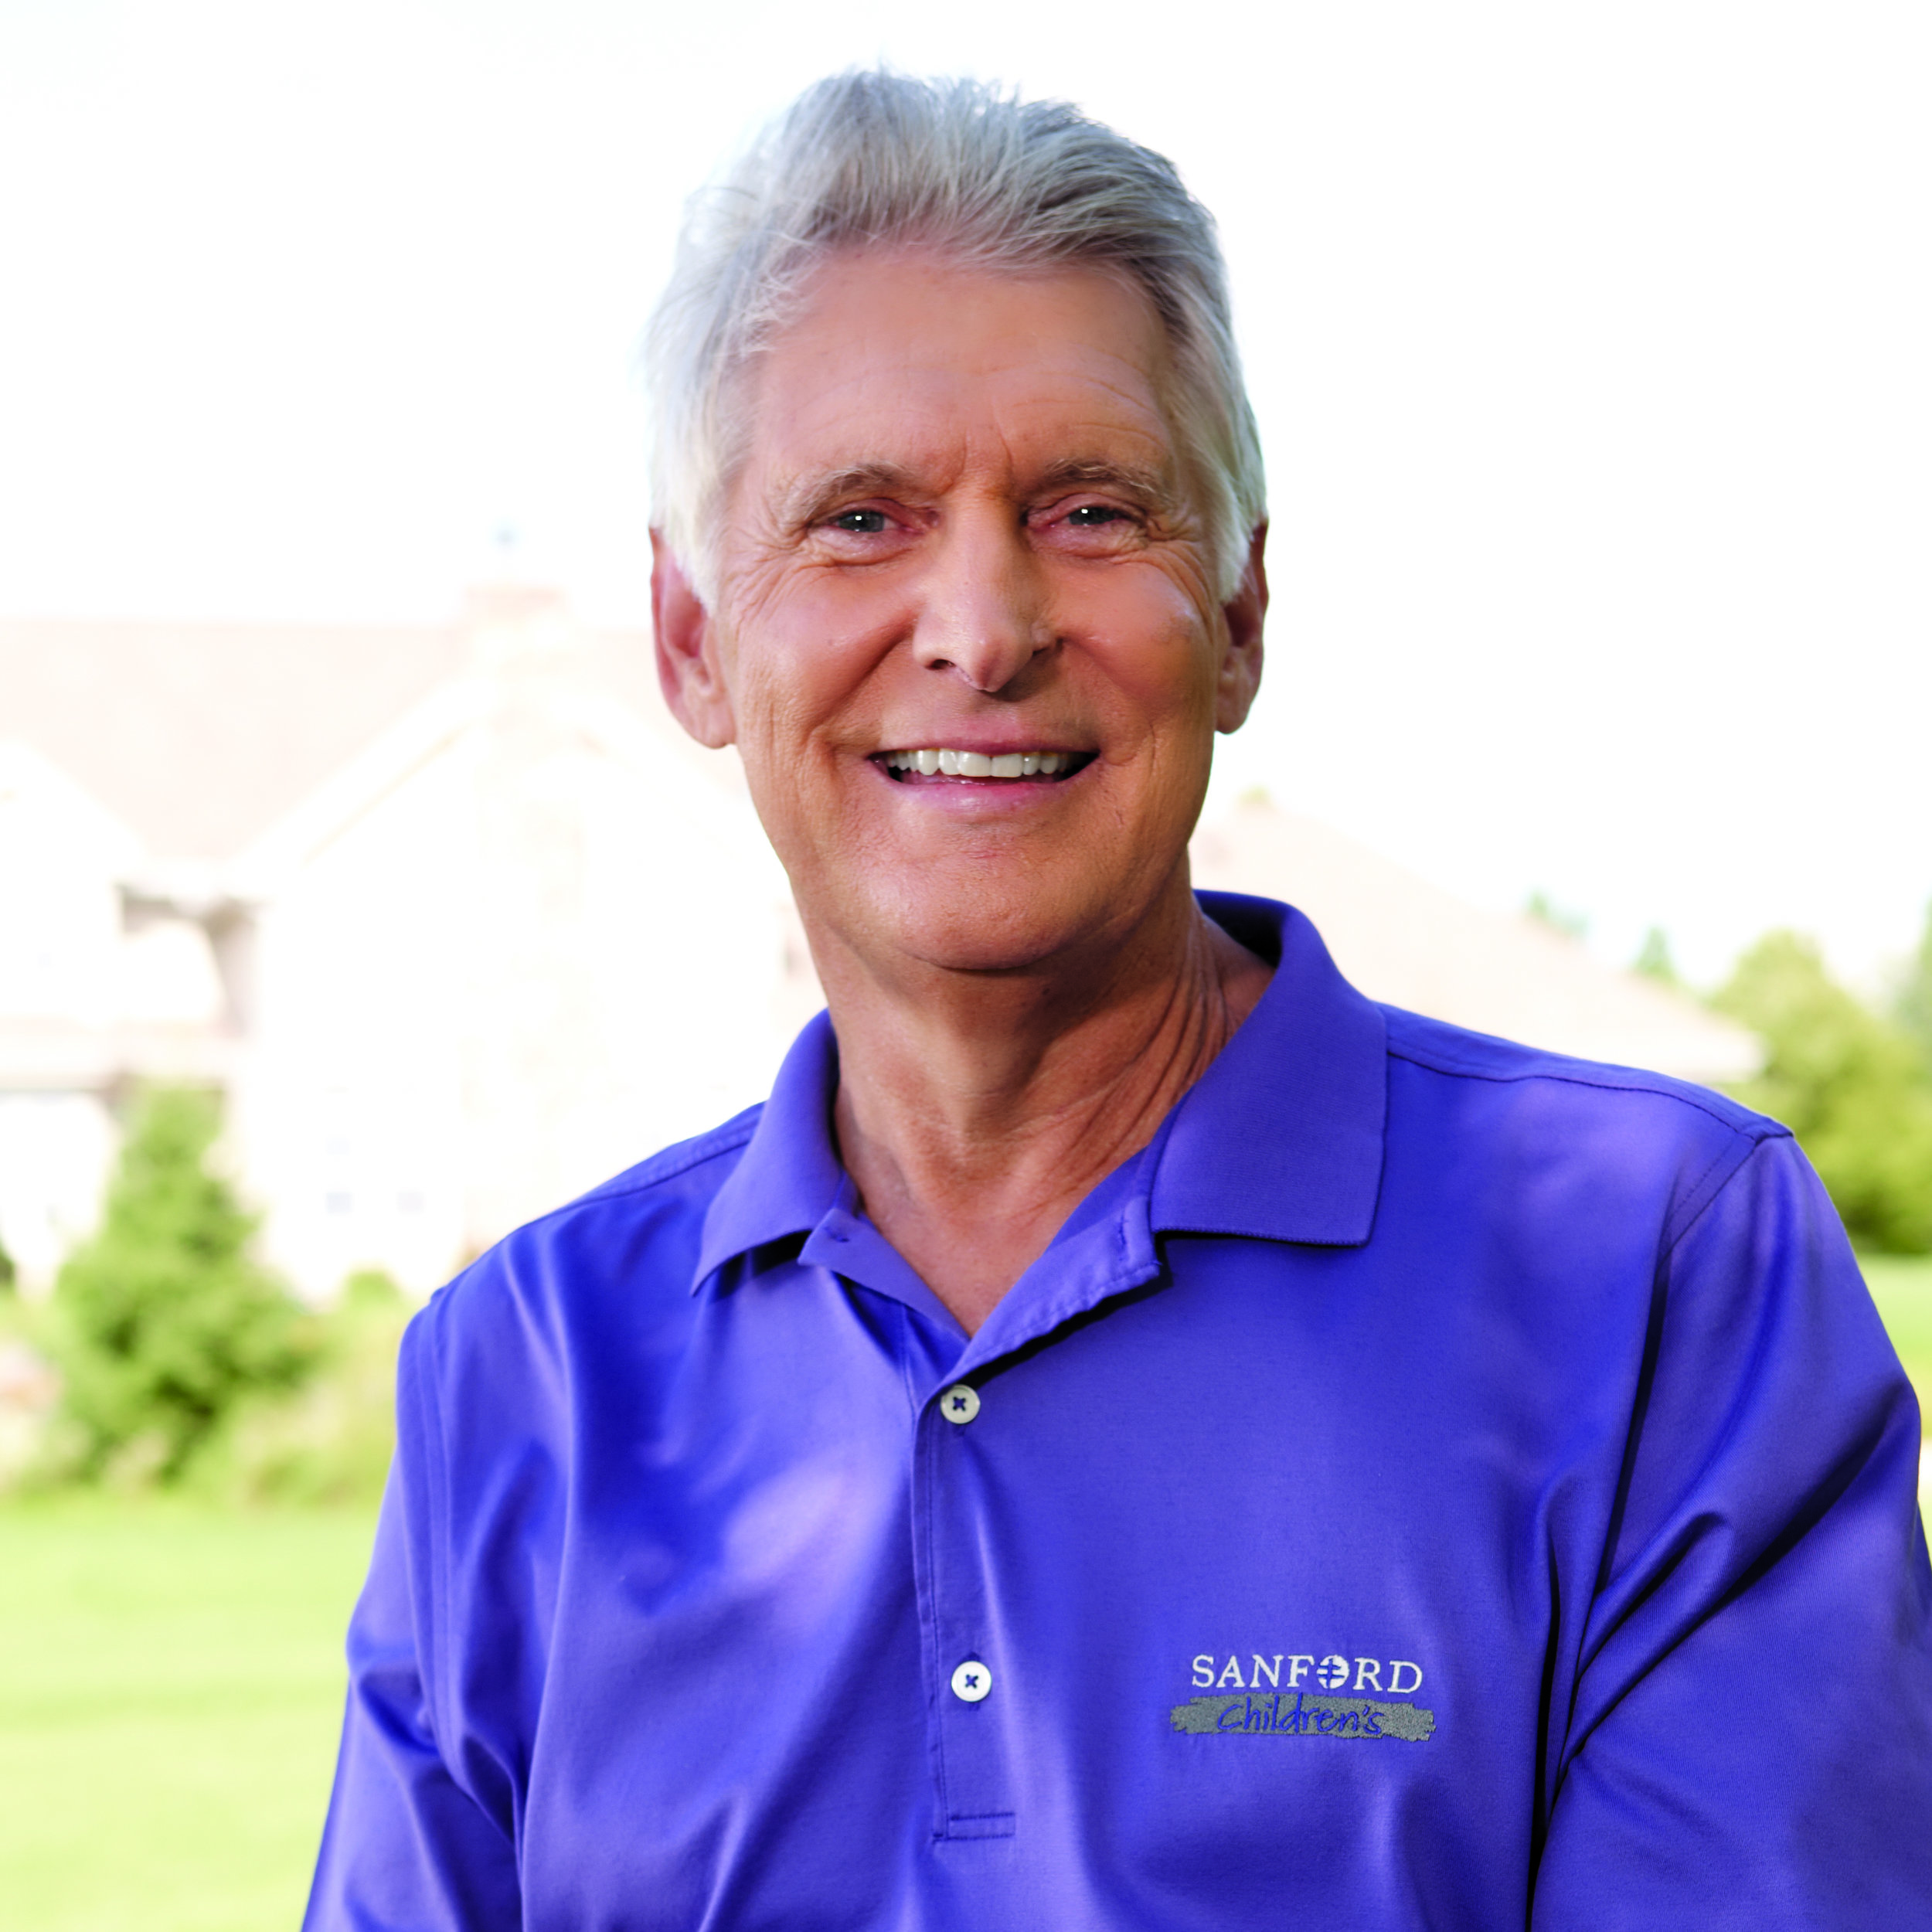 2013 - Andy North - Wisconsin native, Andy North has led a successful PGA career, winning the 1978 and 1985 U.S. Open Championships and has become one of the sport's top earners. He was elected to the Wisconsin Athletic Hall of Fame in 1998.